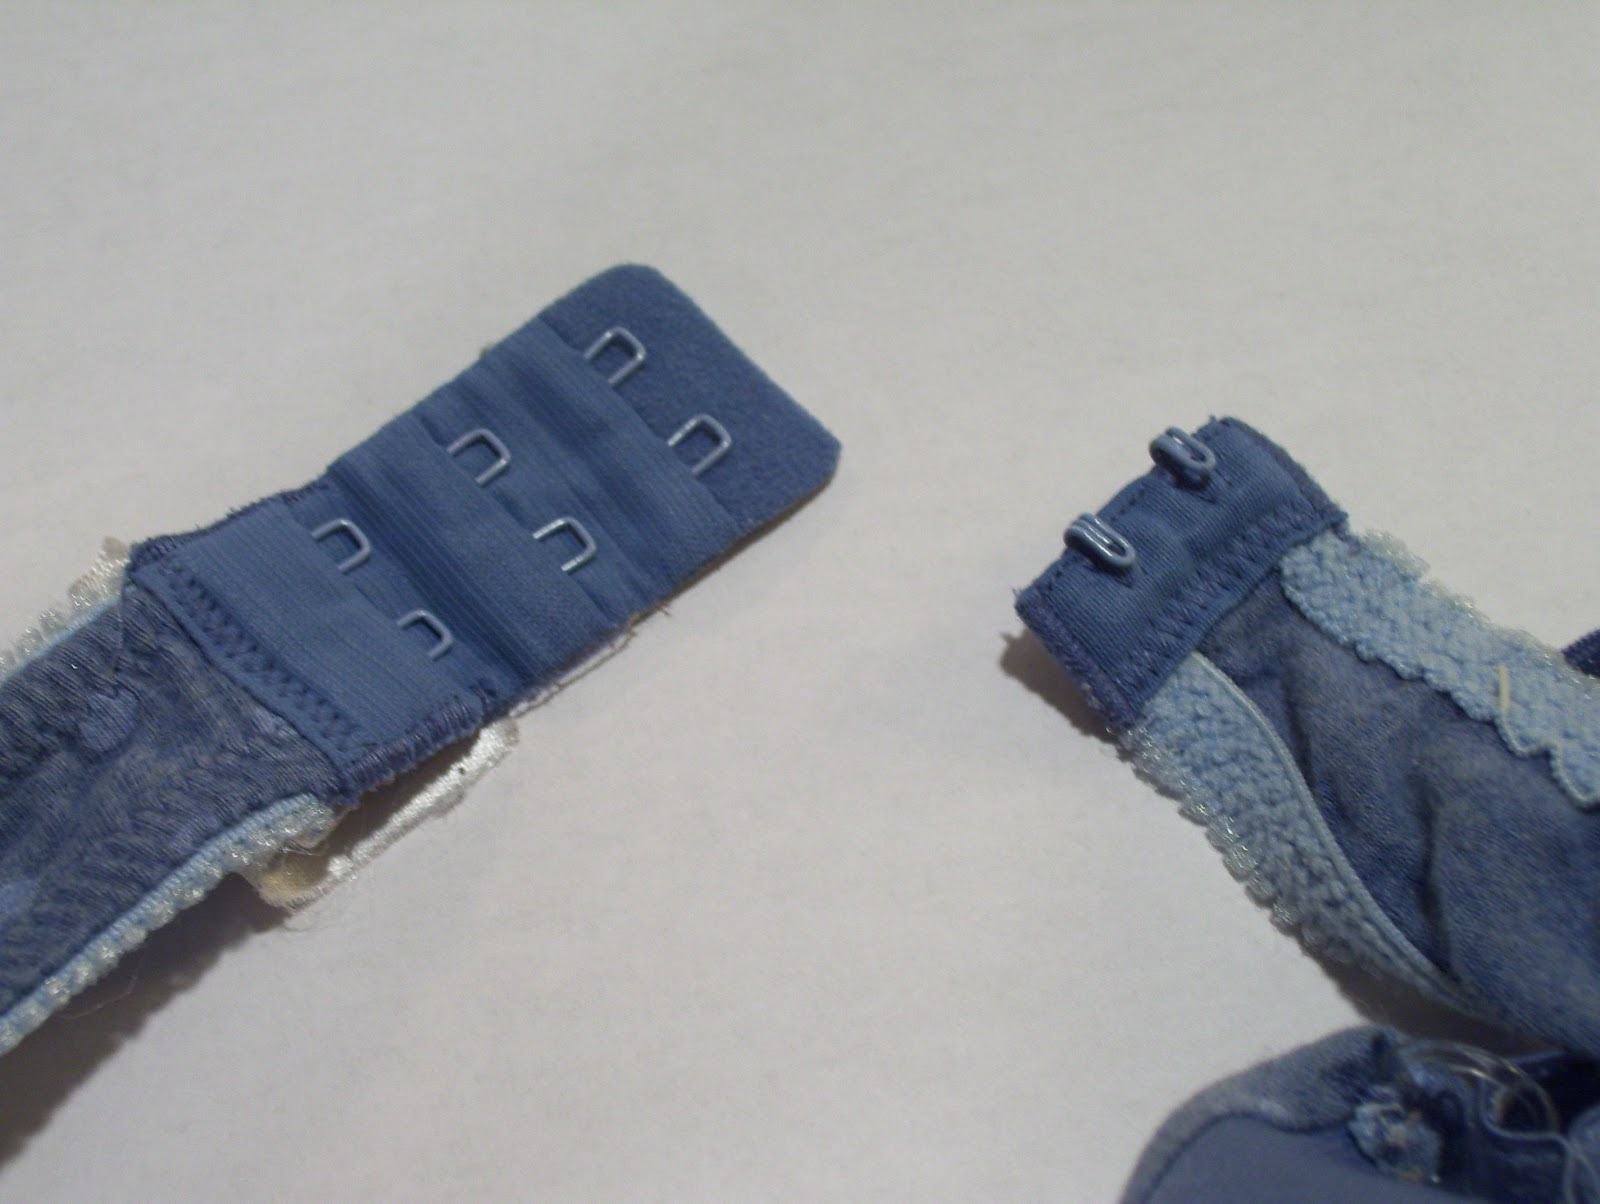 d627ff4a4ea71 Mamma Can Do It  How to make bra extenders for free or cheap!